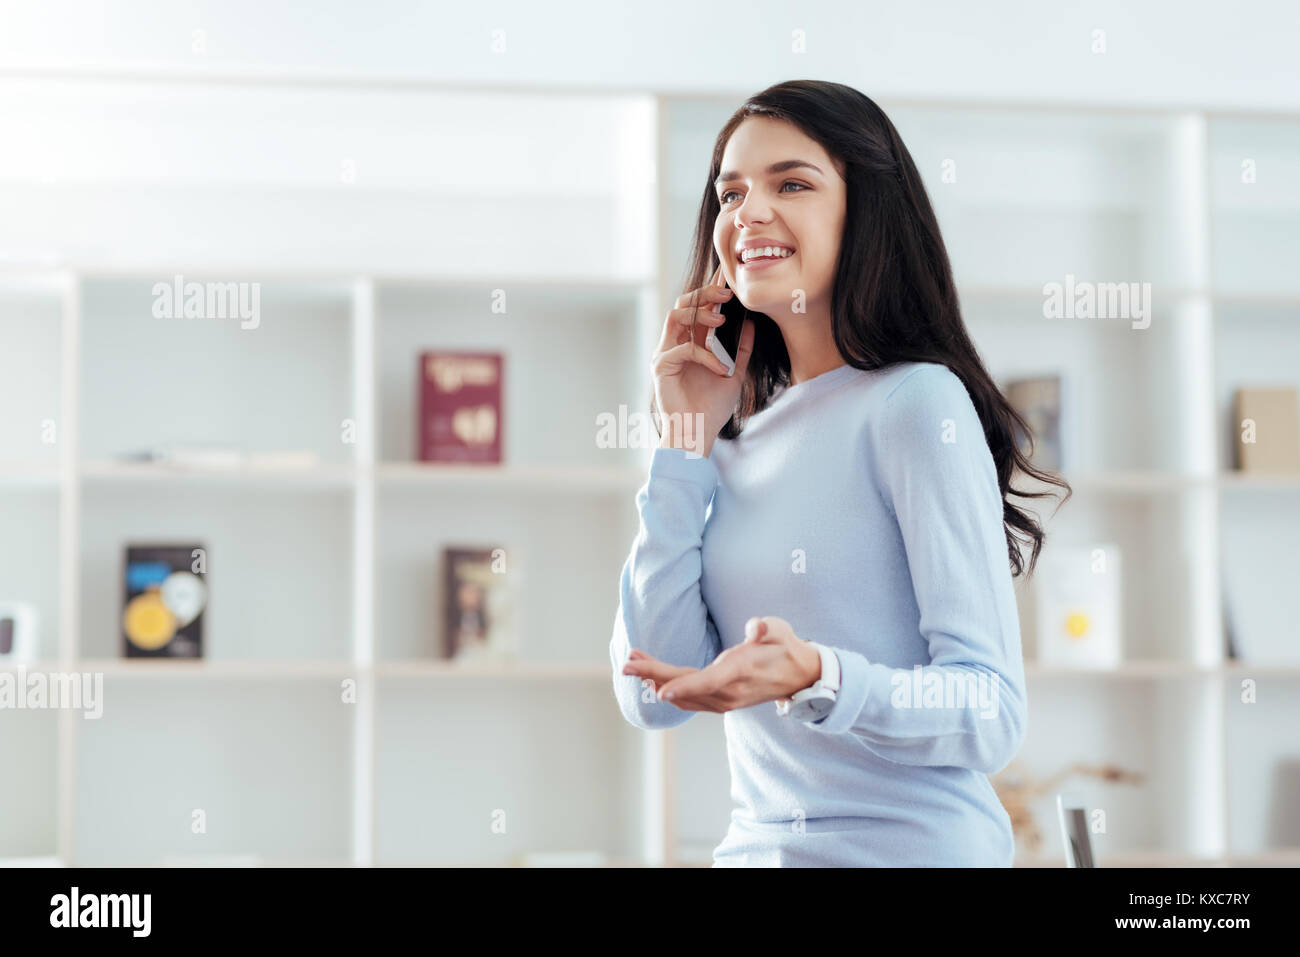 Cheerful cute woman answering call  - Stock Image